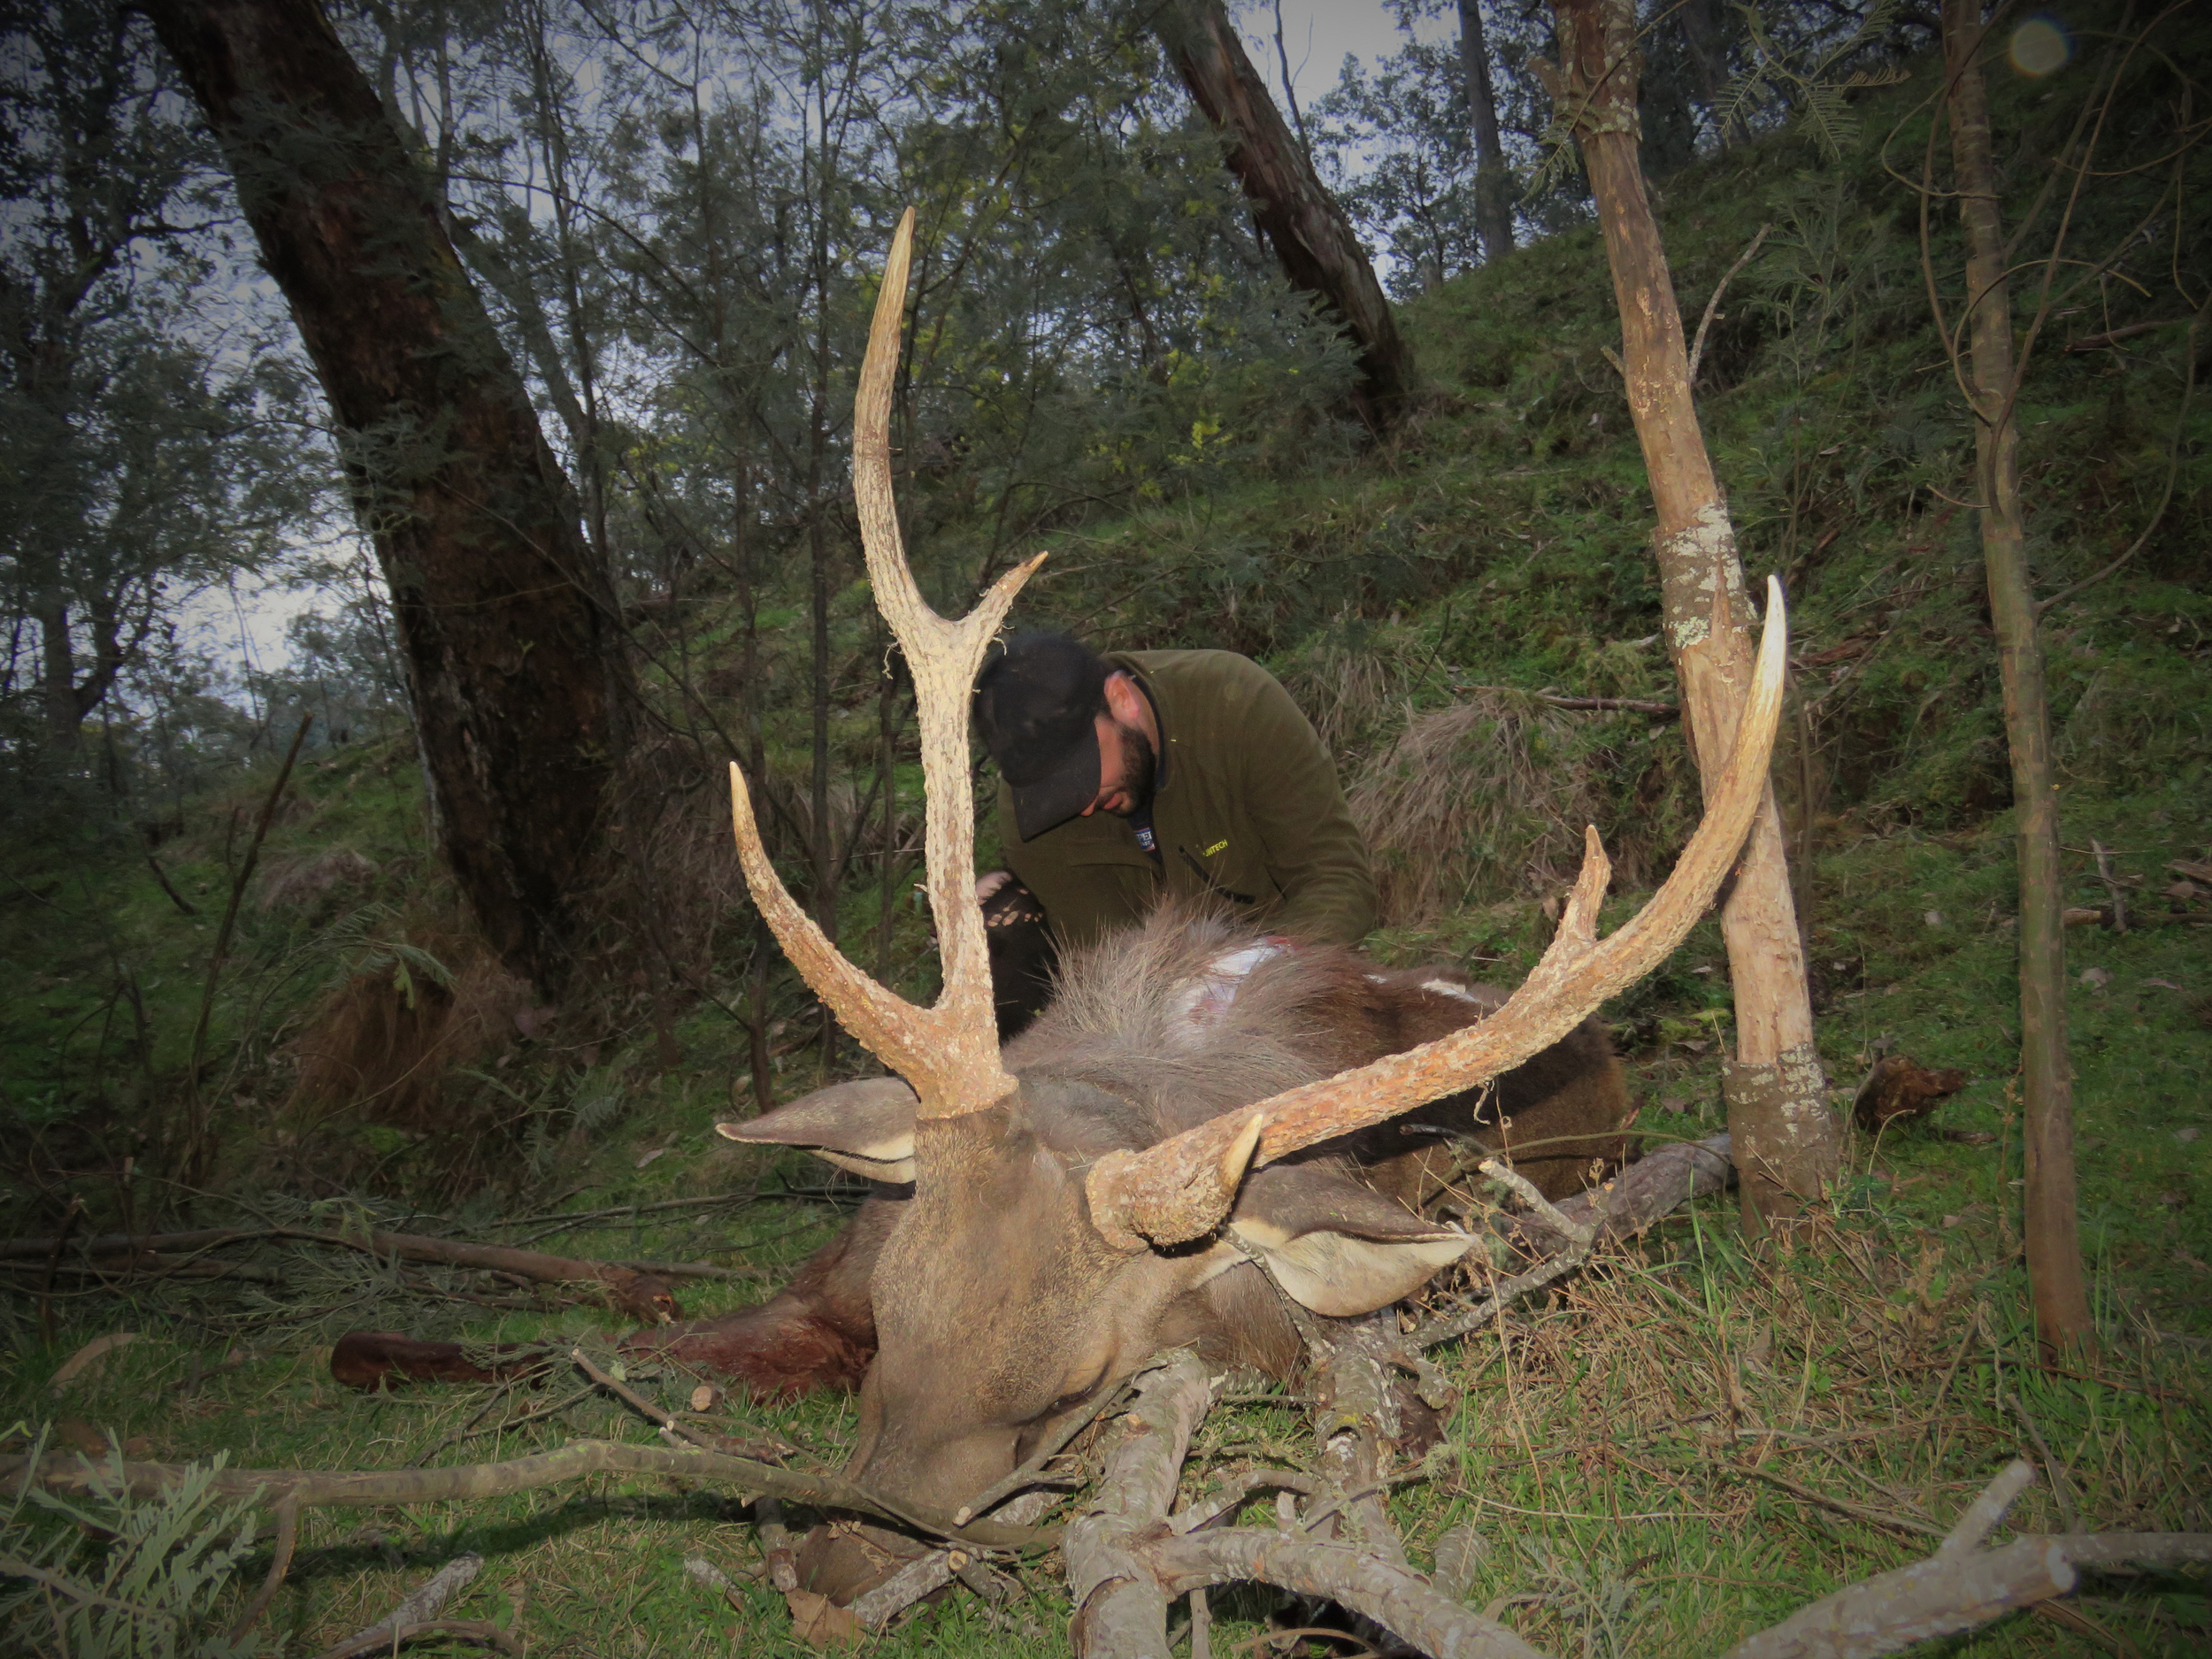 caping out the sambar stag